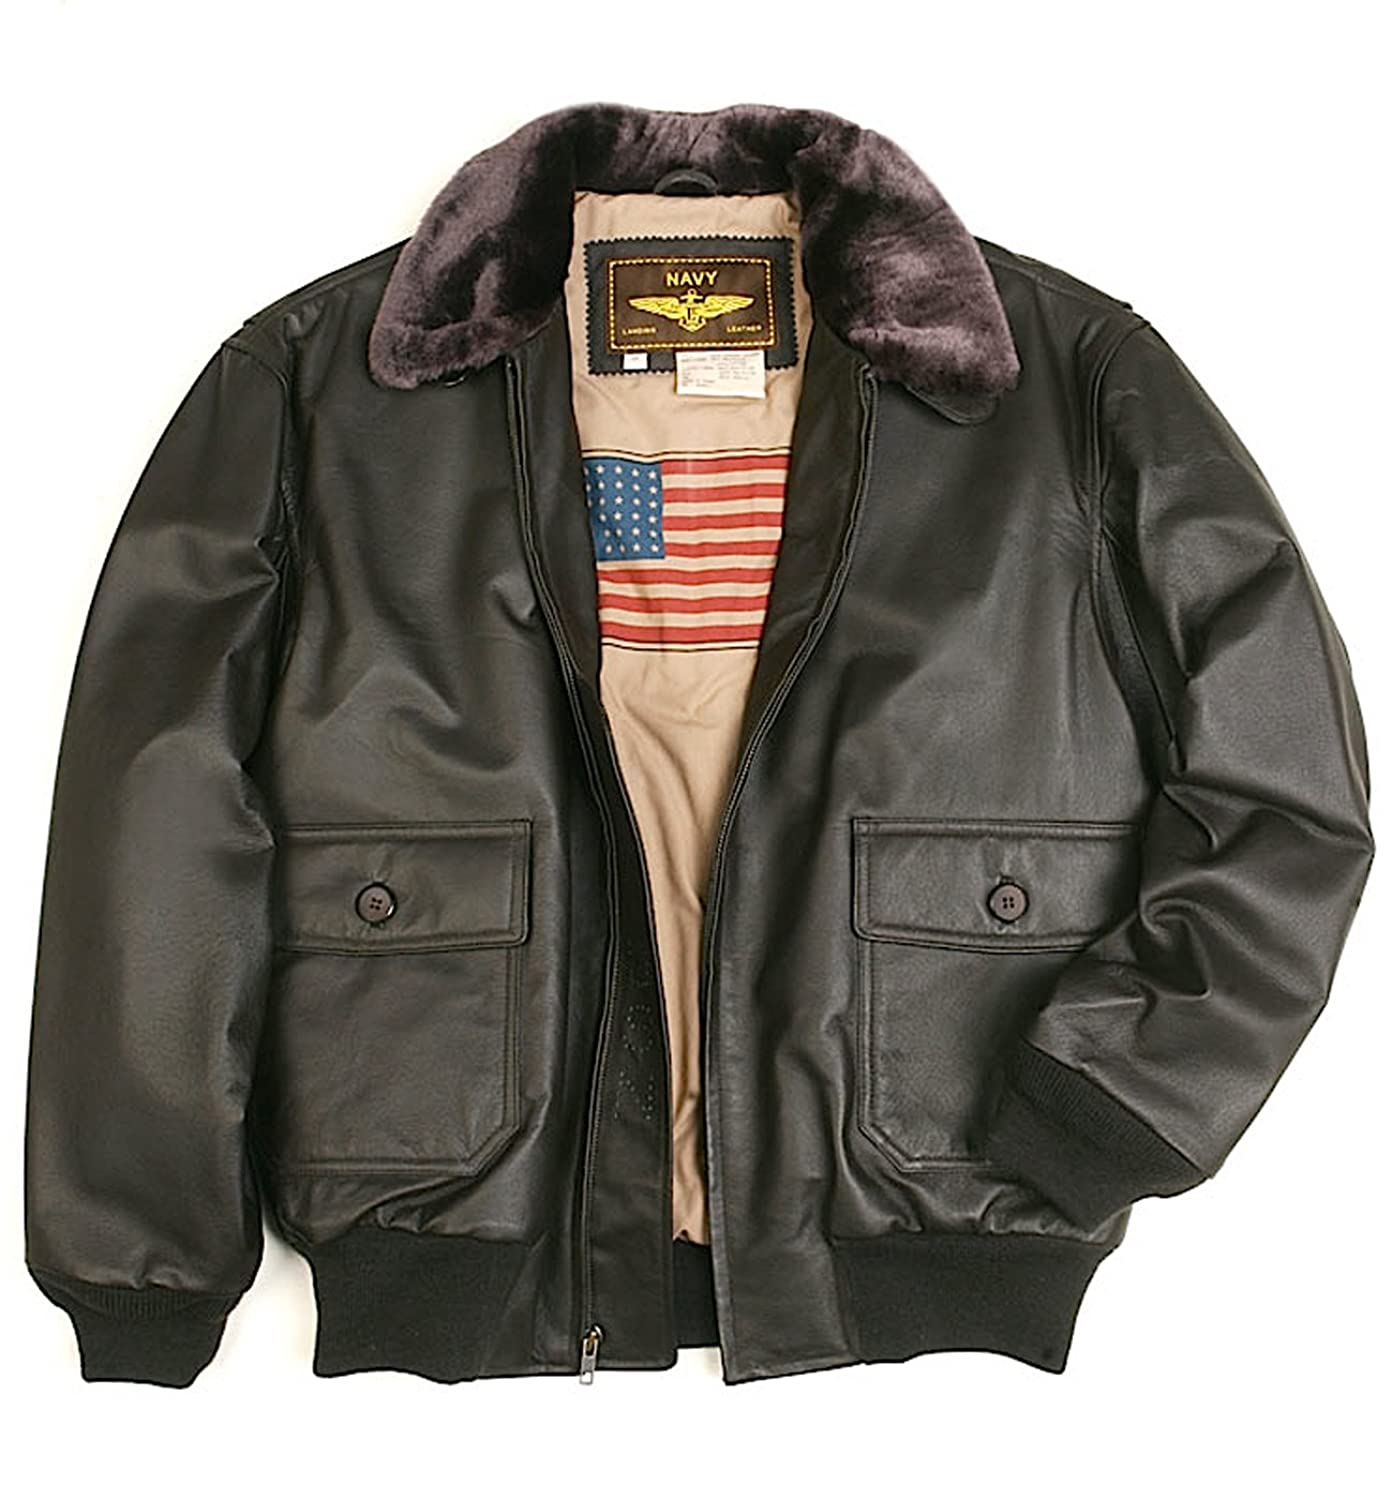 Online Store Selling Leather Military Jackets, Bomber Jackets, Military Apparel, A-2, G-1, Adventure Jackets, USA Made, Leather Repair. FREE SHIPPING IN USA ON ORDERS $+ Dismiss. Skip to content. US Wings Signature Series Made In the USA. Something wonderful to add to the top of your must-have list! Shop Signature Series. WE SHIP WORLDWIDE.